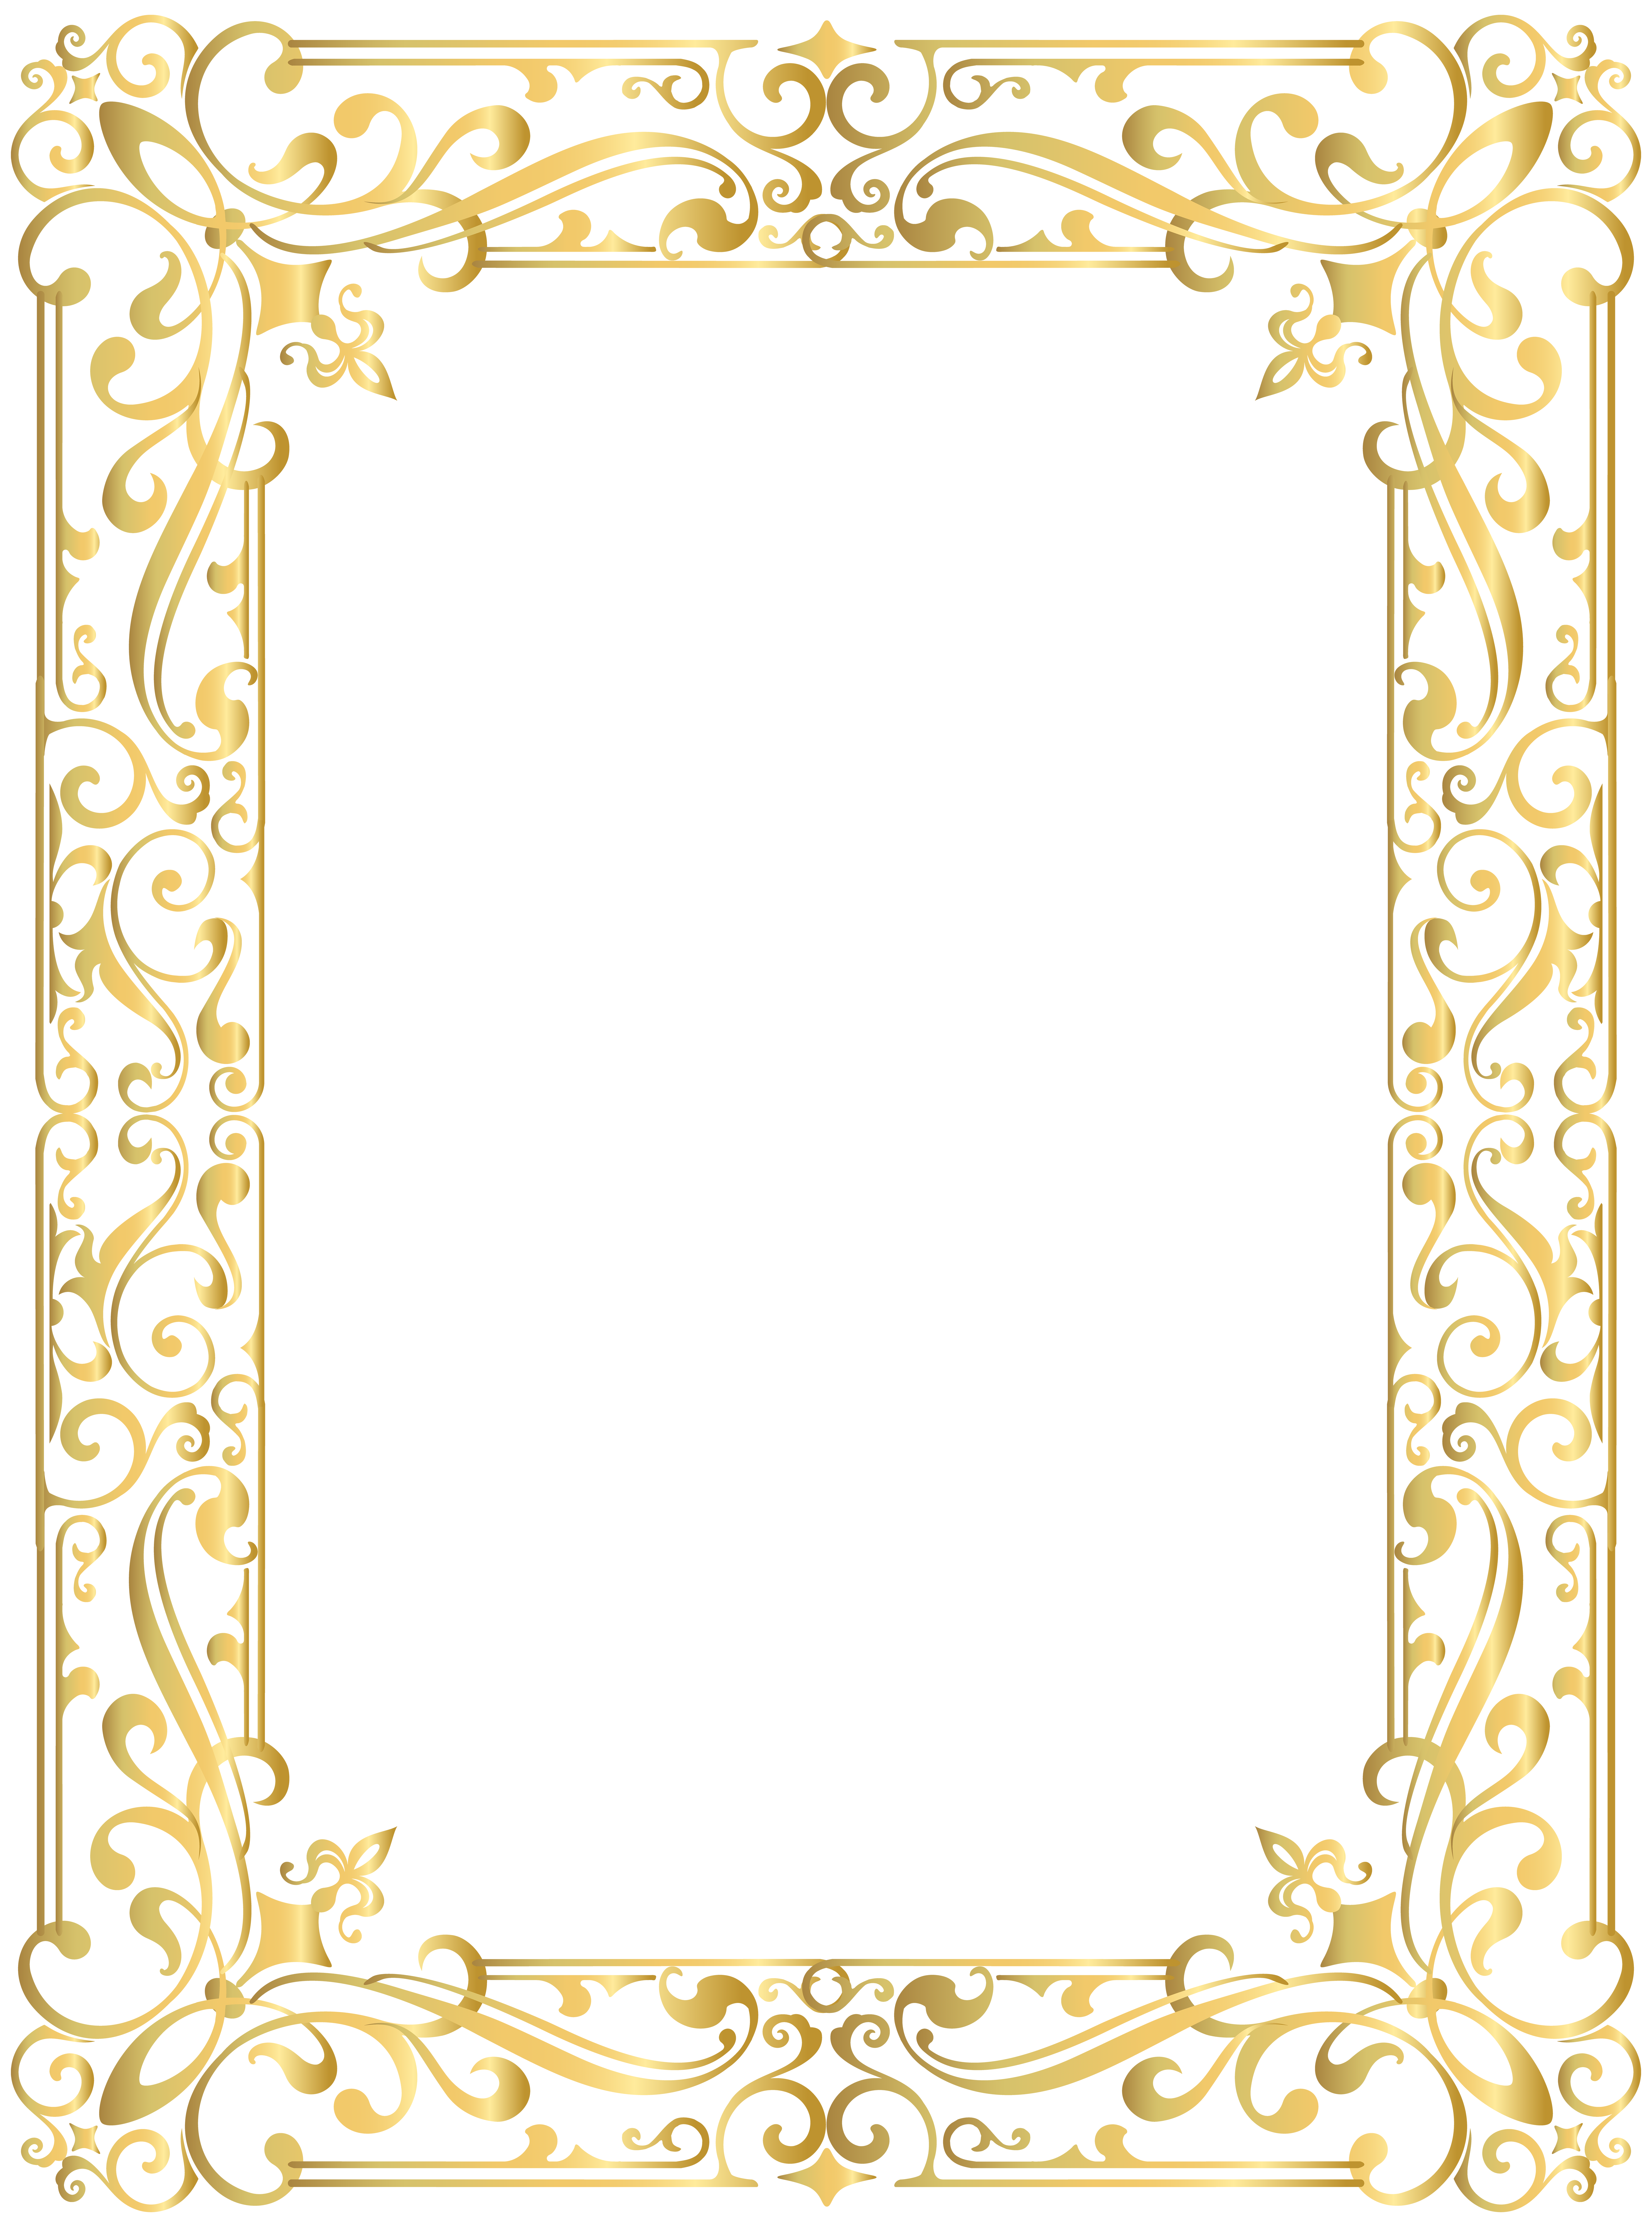 Border Frame Gold Png Clipart Image Gallery Yopriceville High Quality Images And Transparent Png Free Frame Border Design Printable Frames Picture Borders